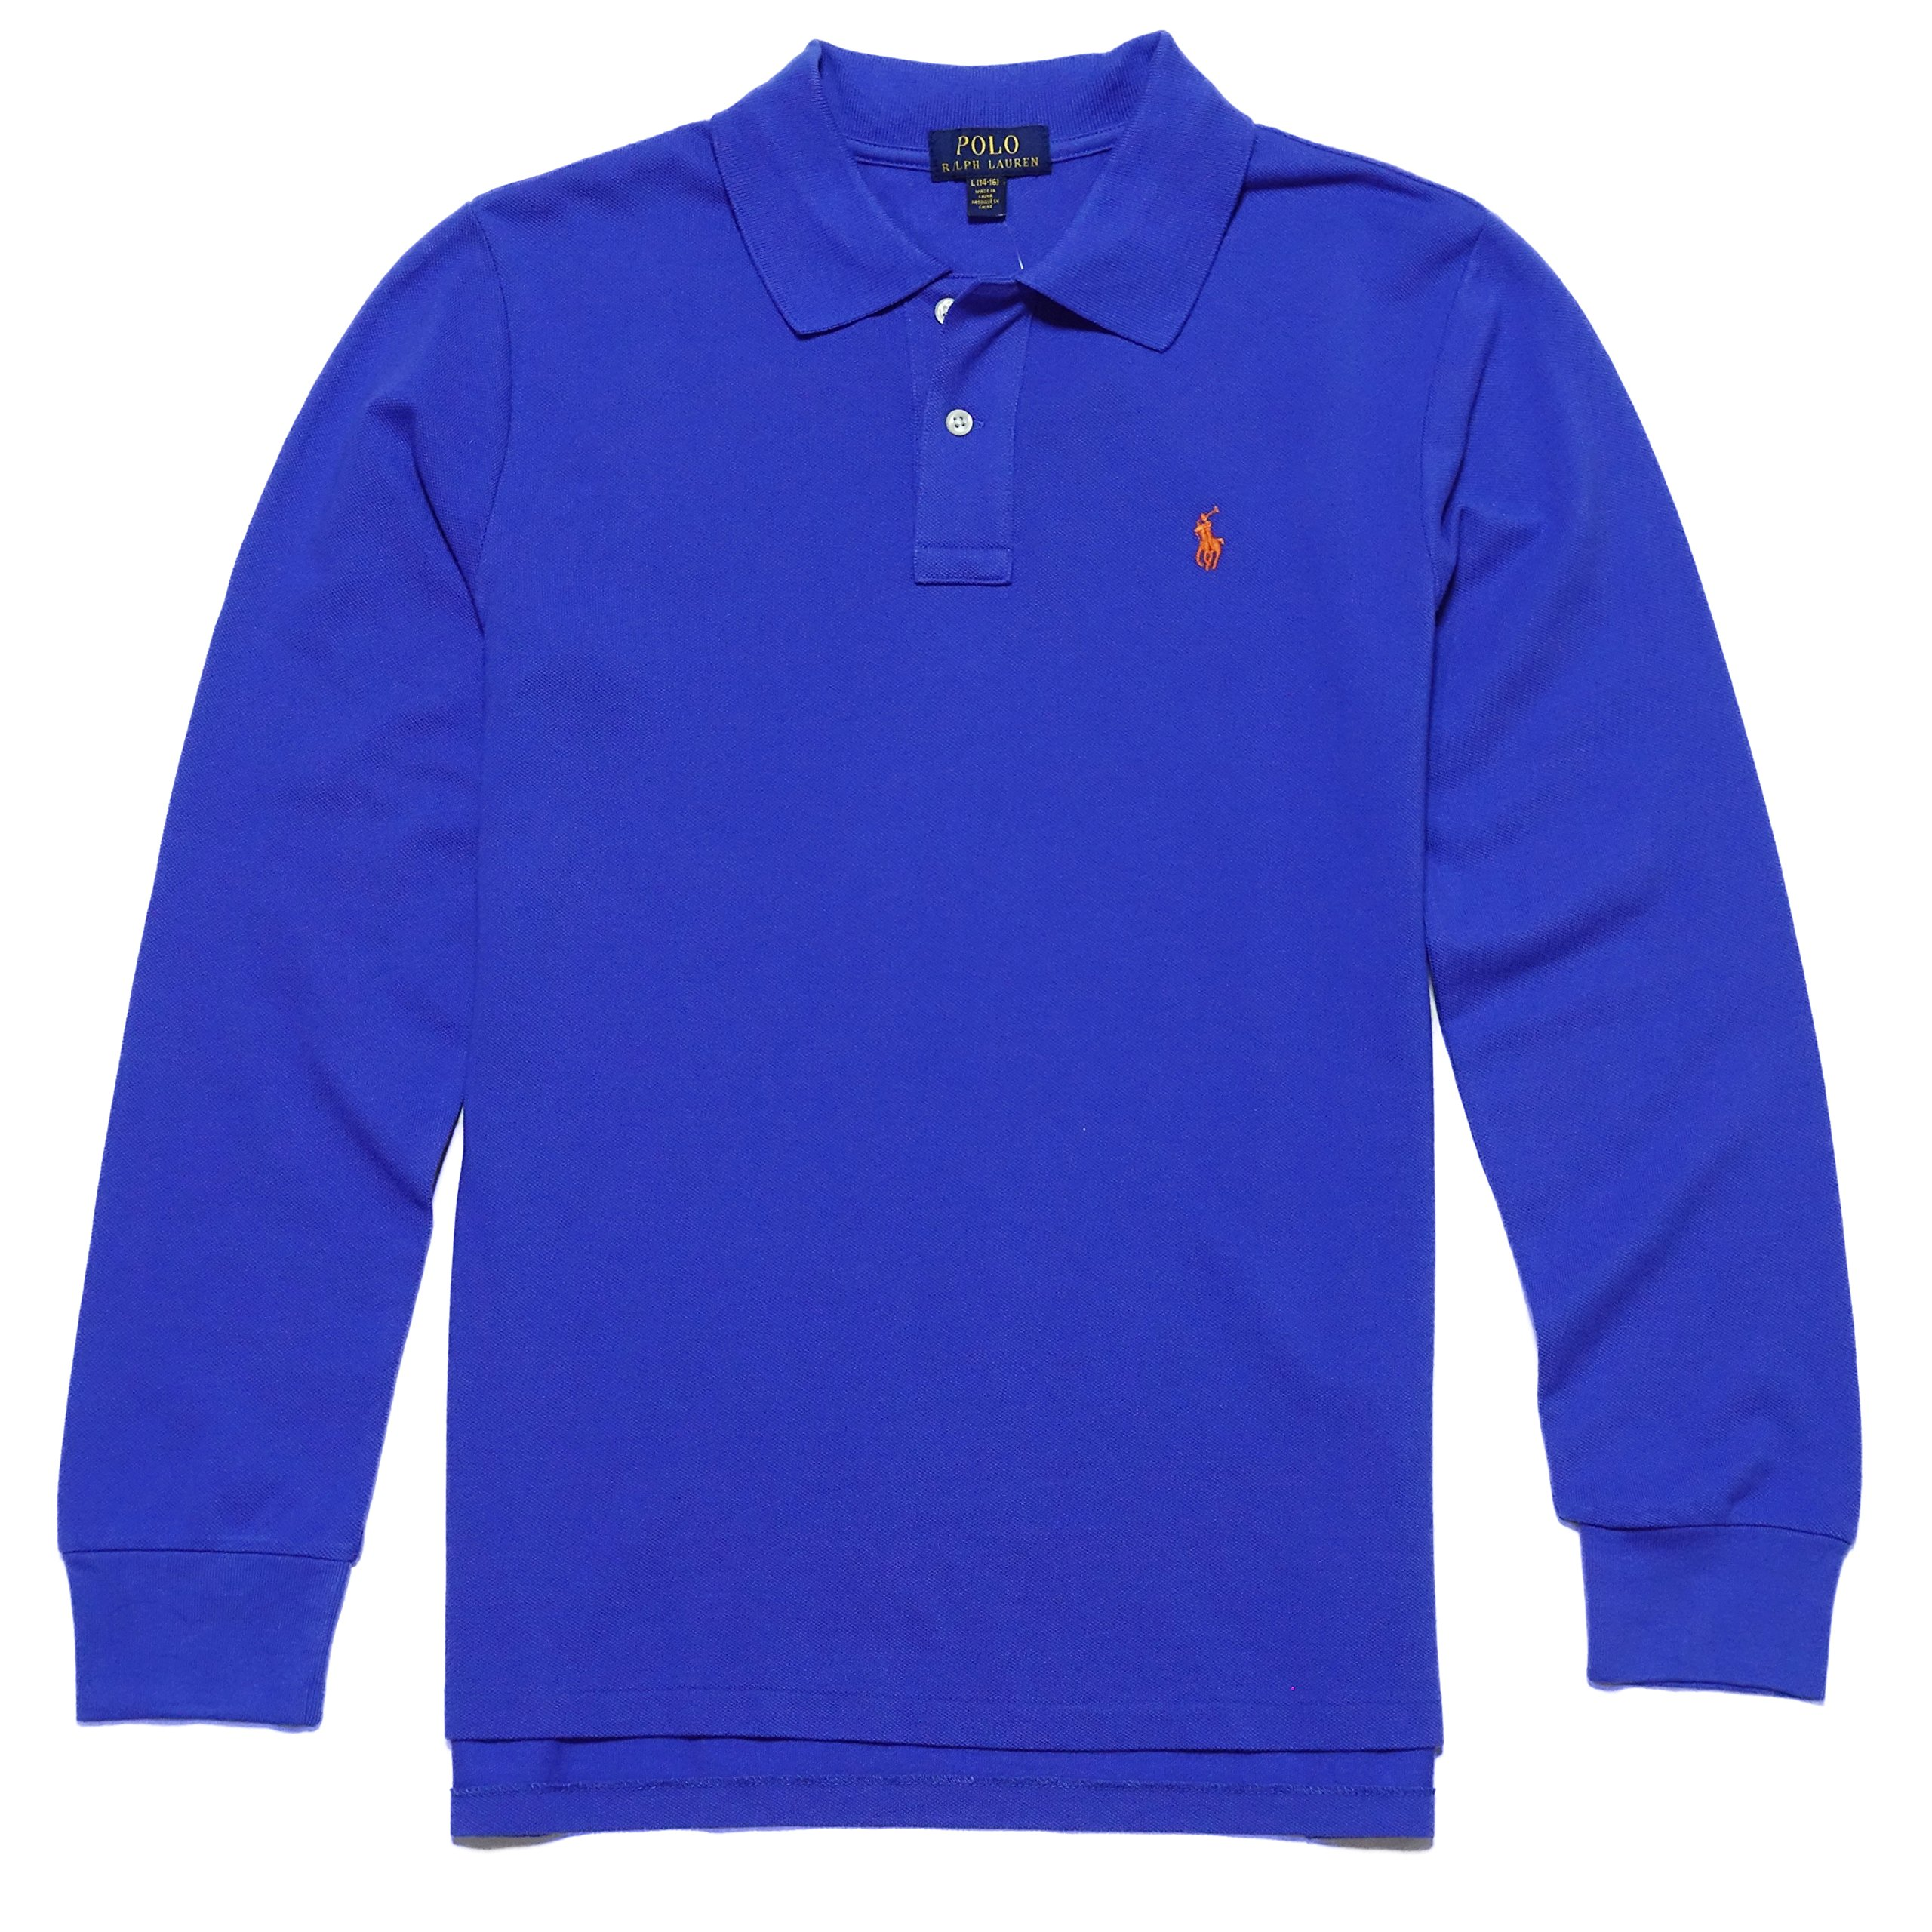 New with tag NWT Boys Ralph Lauren Barclay Blue Long Sleeve Polo Shirt M L XL